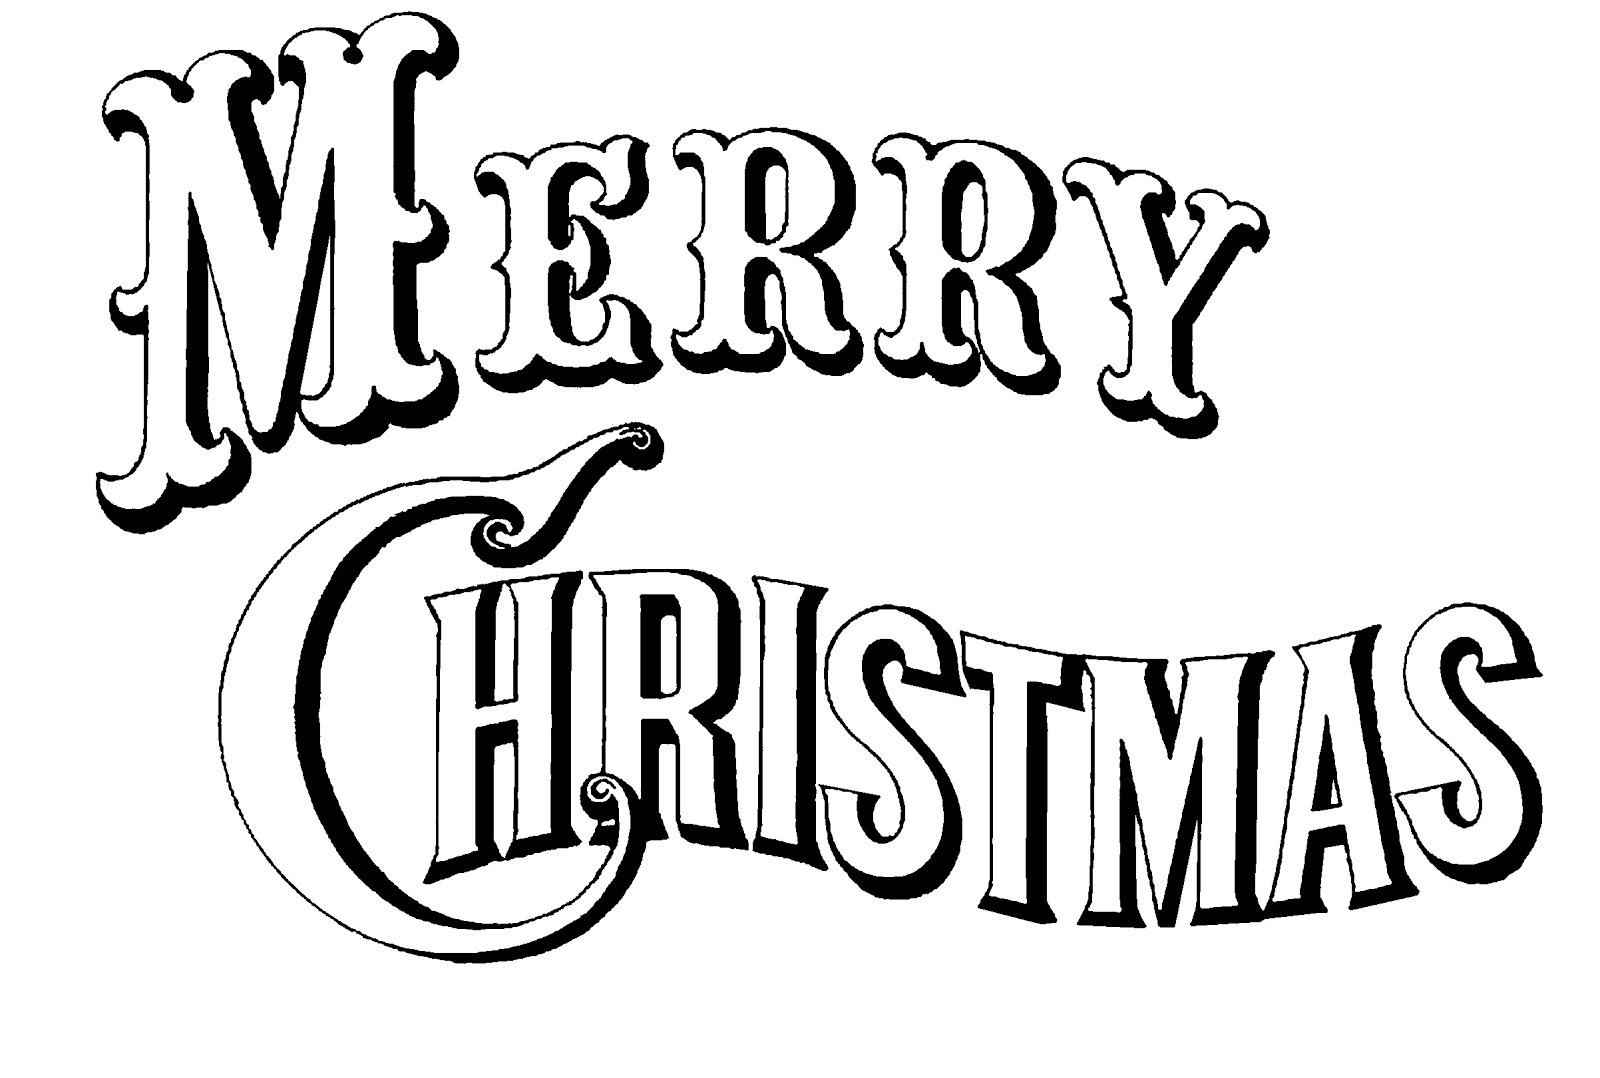 Merry Christmas Clipart Black And White | Clipart Panda - Free Clipart ...